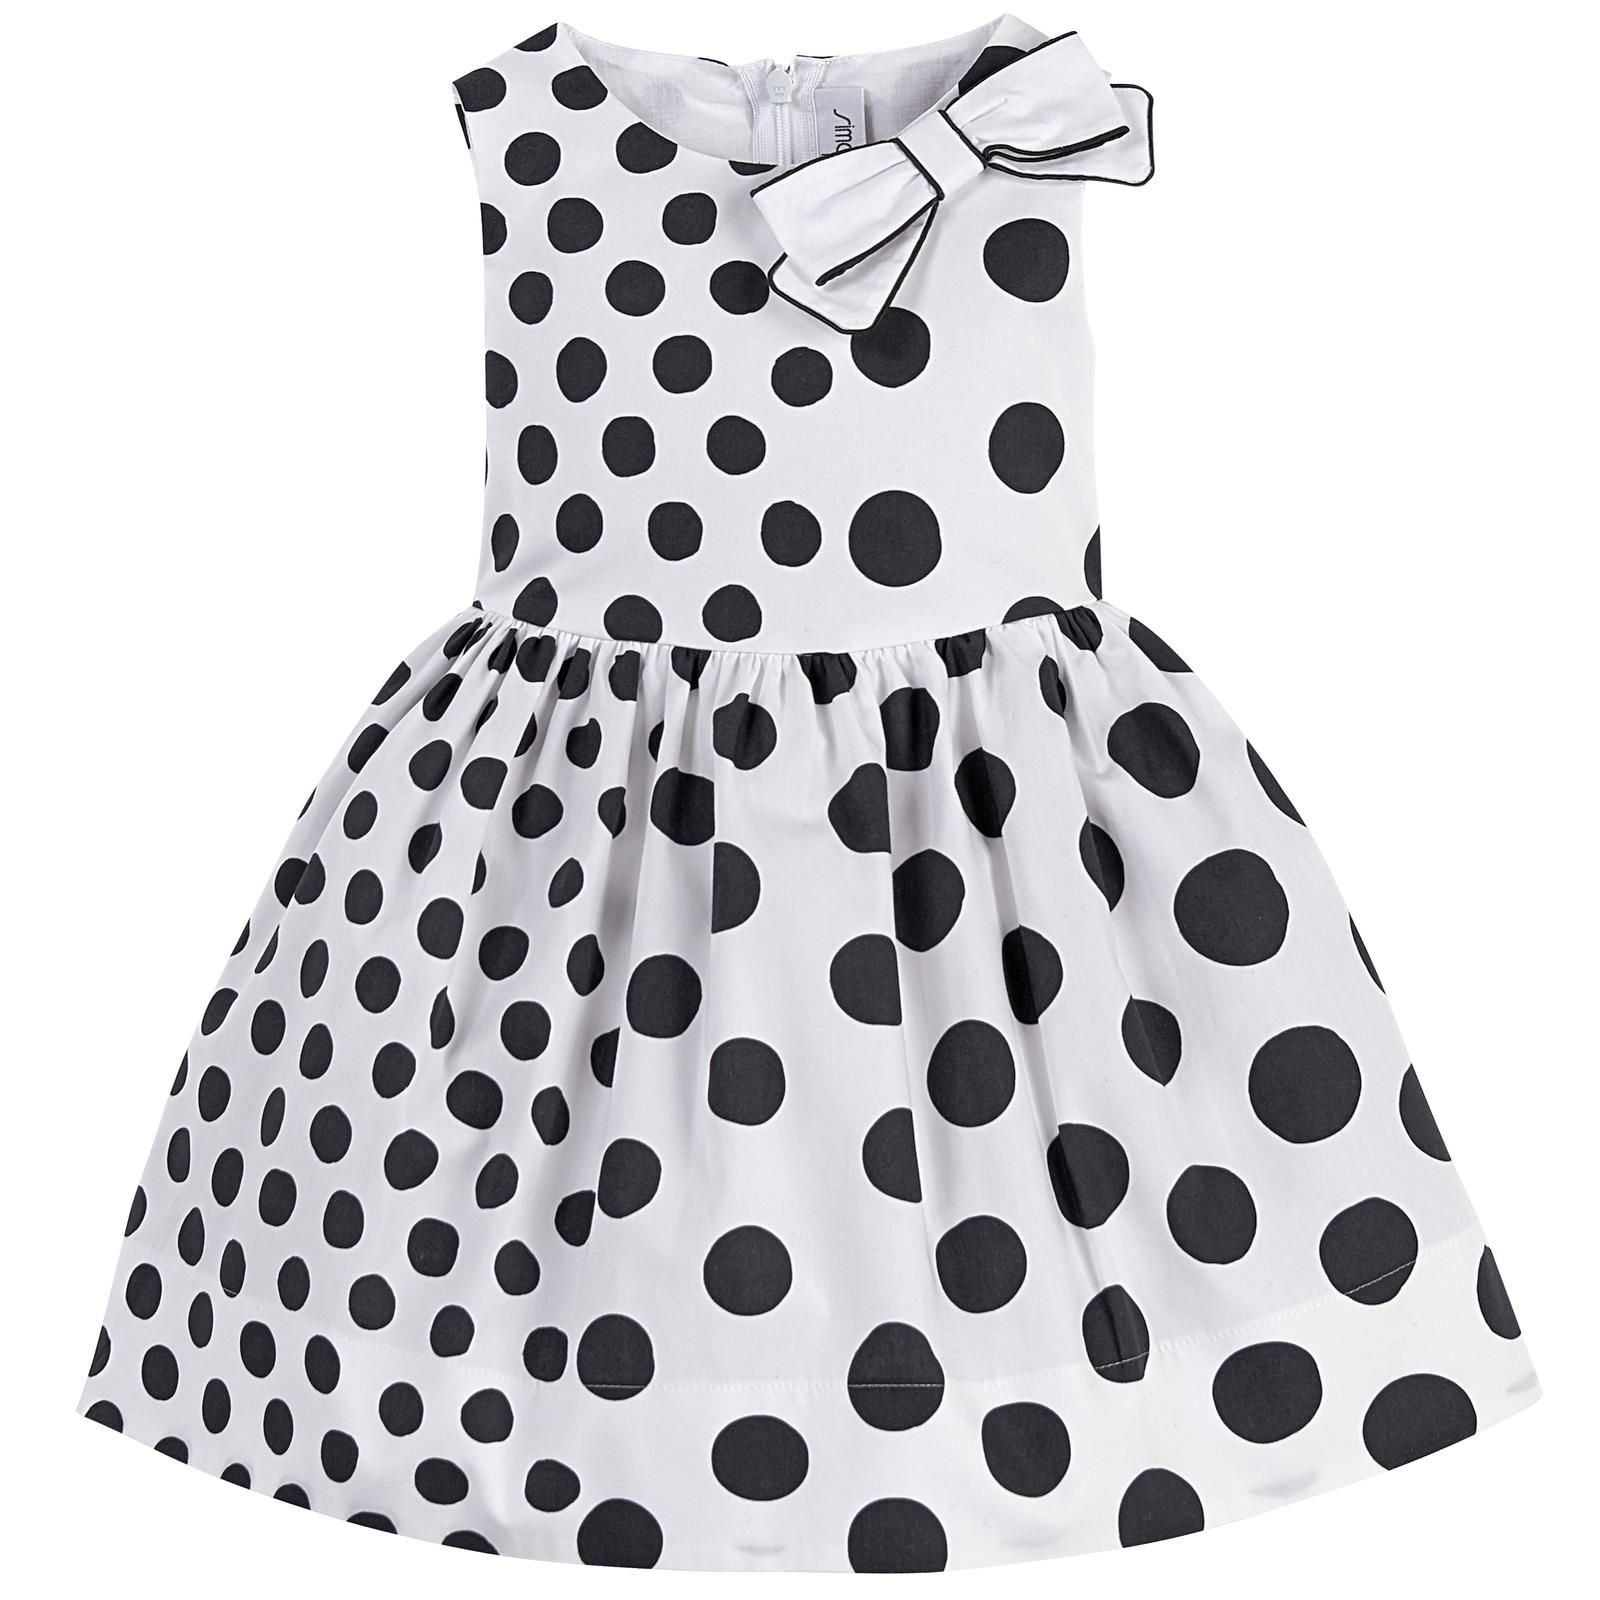 US Vintage Toddler Kids Baby Girls Clothes Ruffle Swing Dress Dots Party Dresses